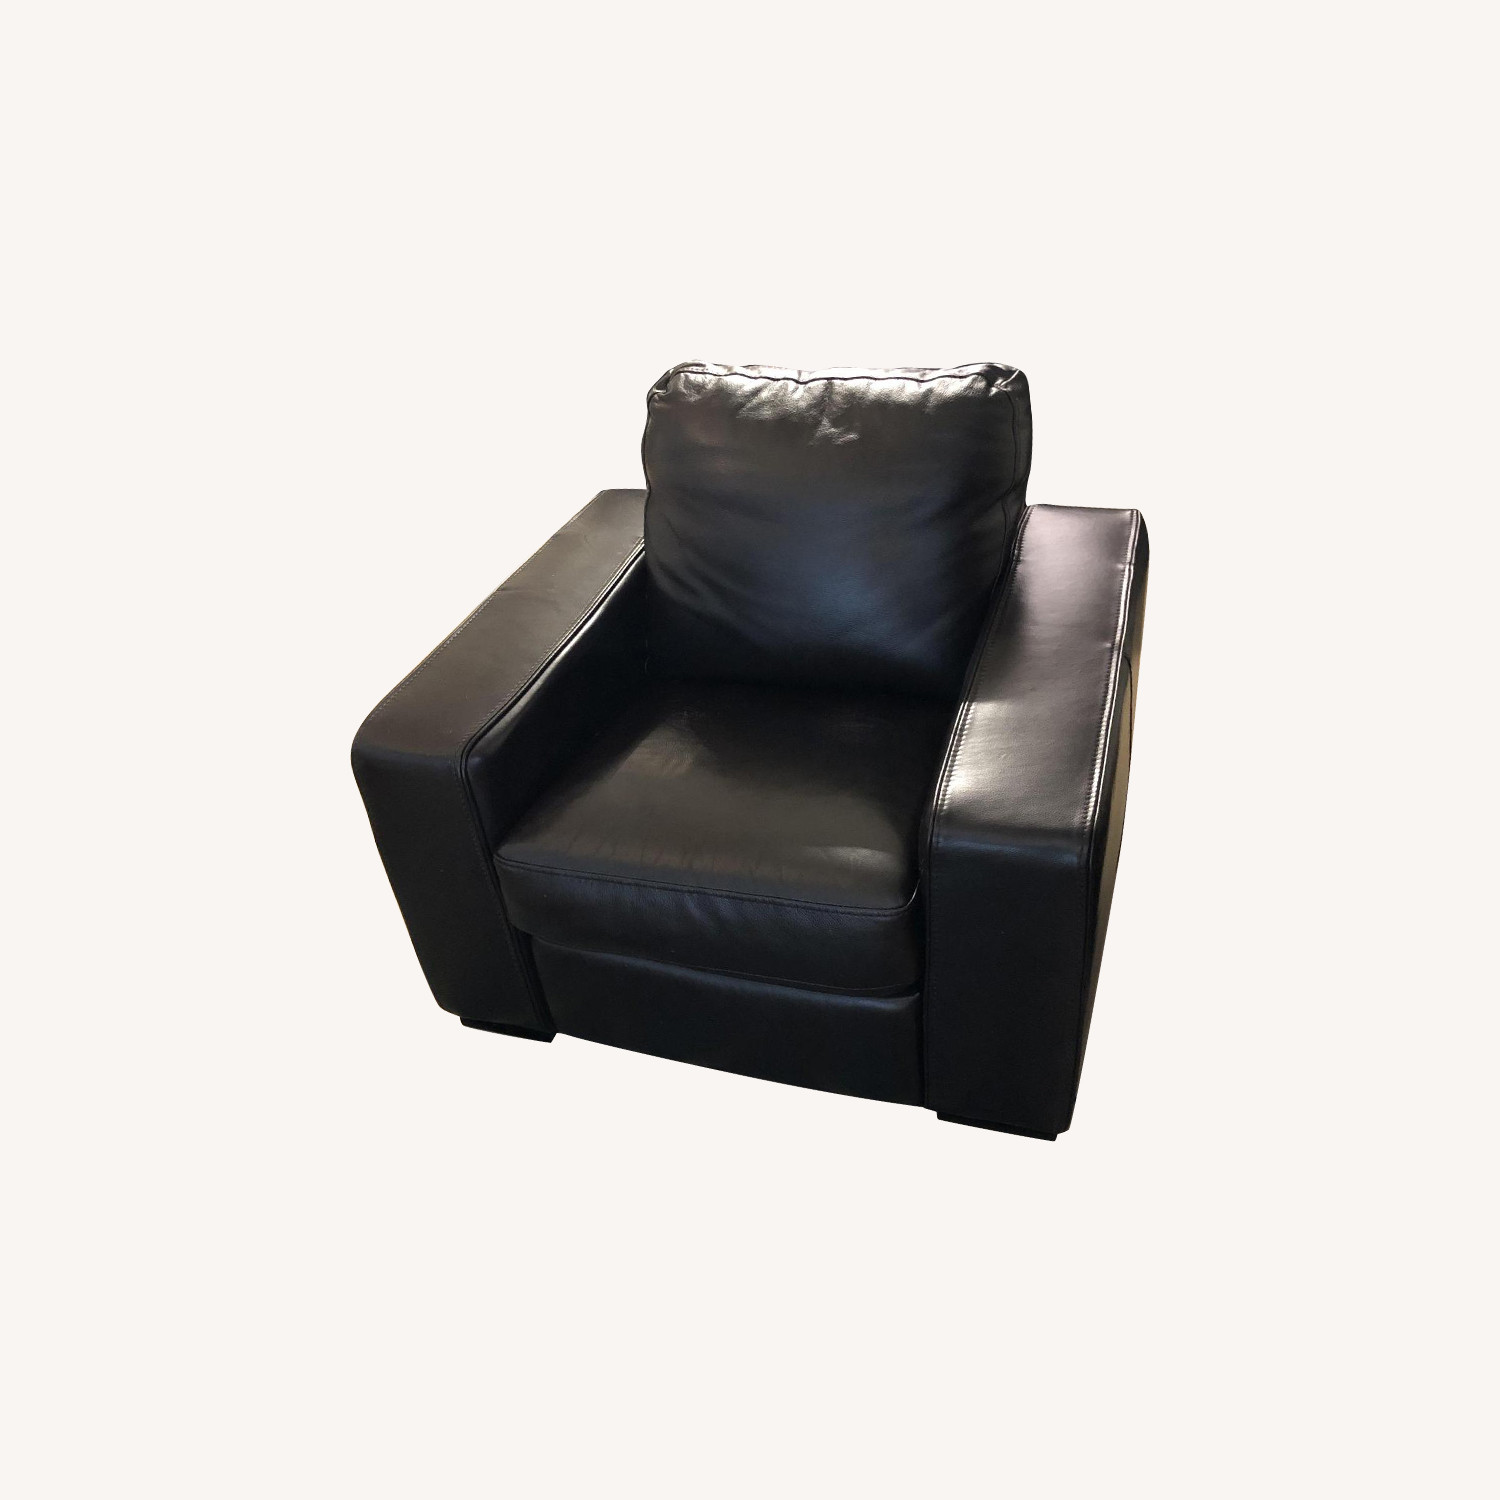 Macy's Leather Electric Recliner